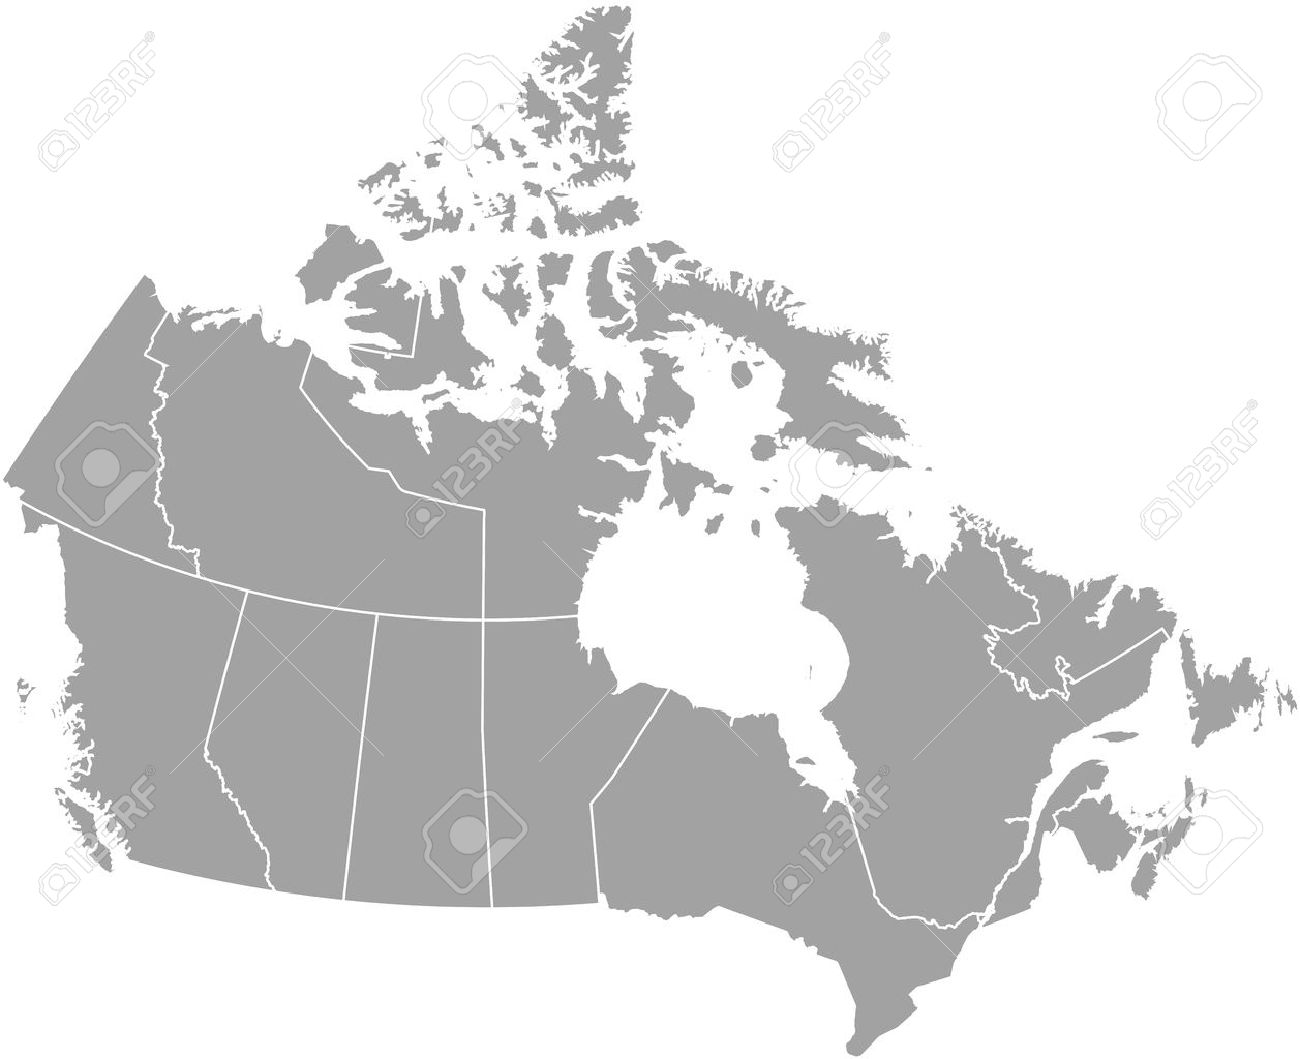 Canada Province Map Outline Canada Map Outline With Borders Of Provinces Or States Royalty